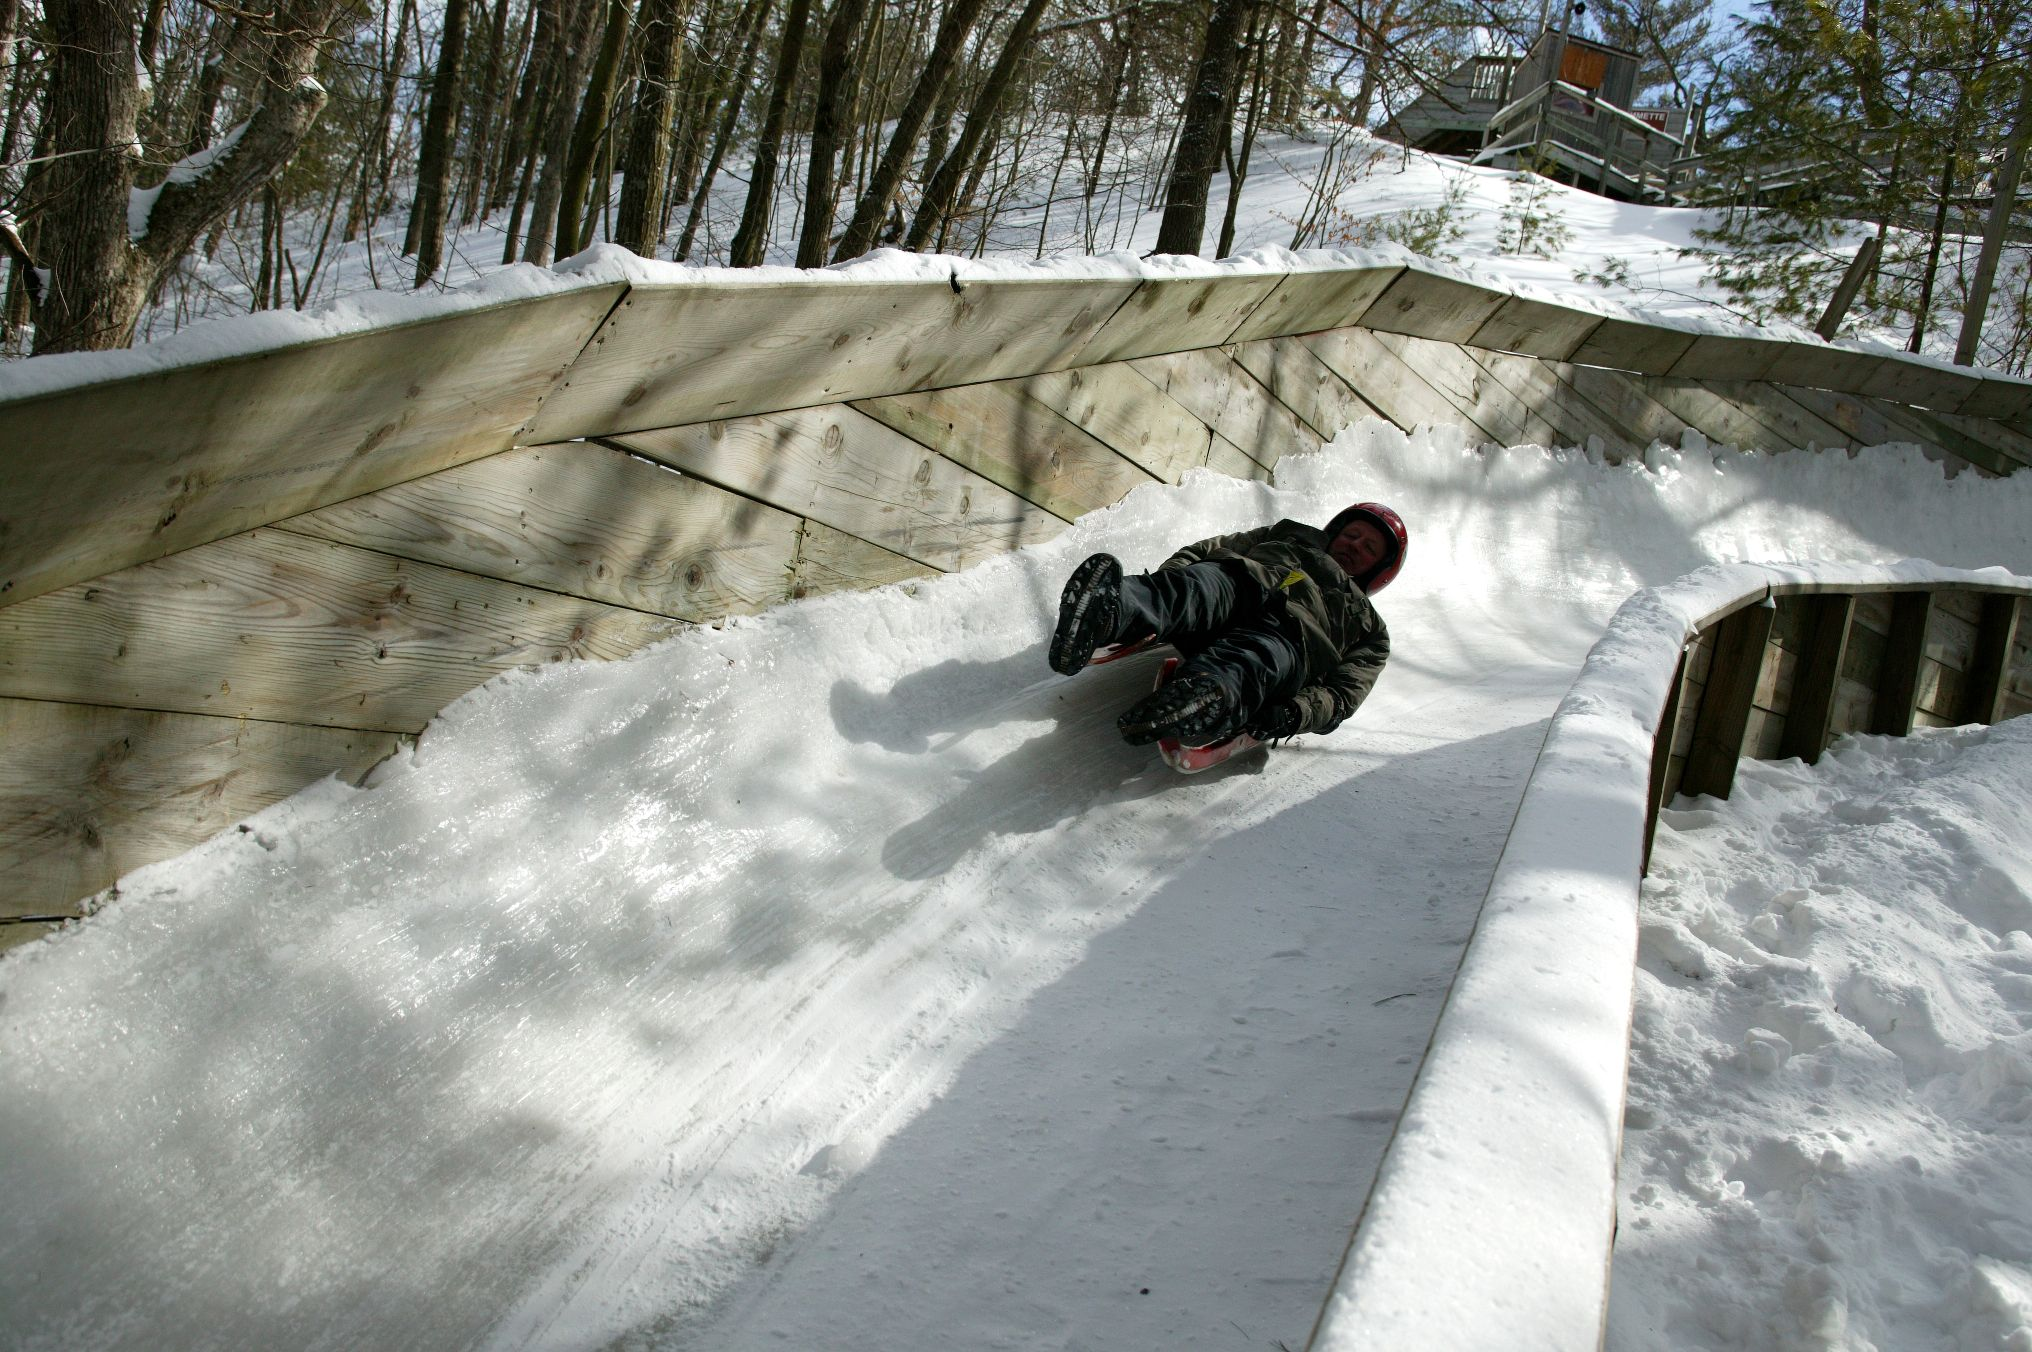 Luging at Muskegon State Park Winter Sports Complex